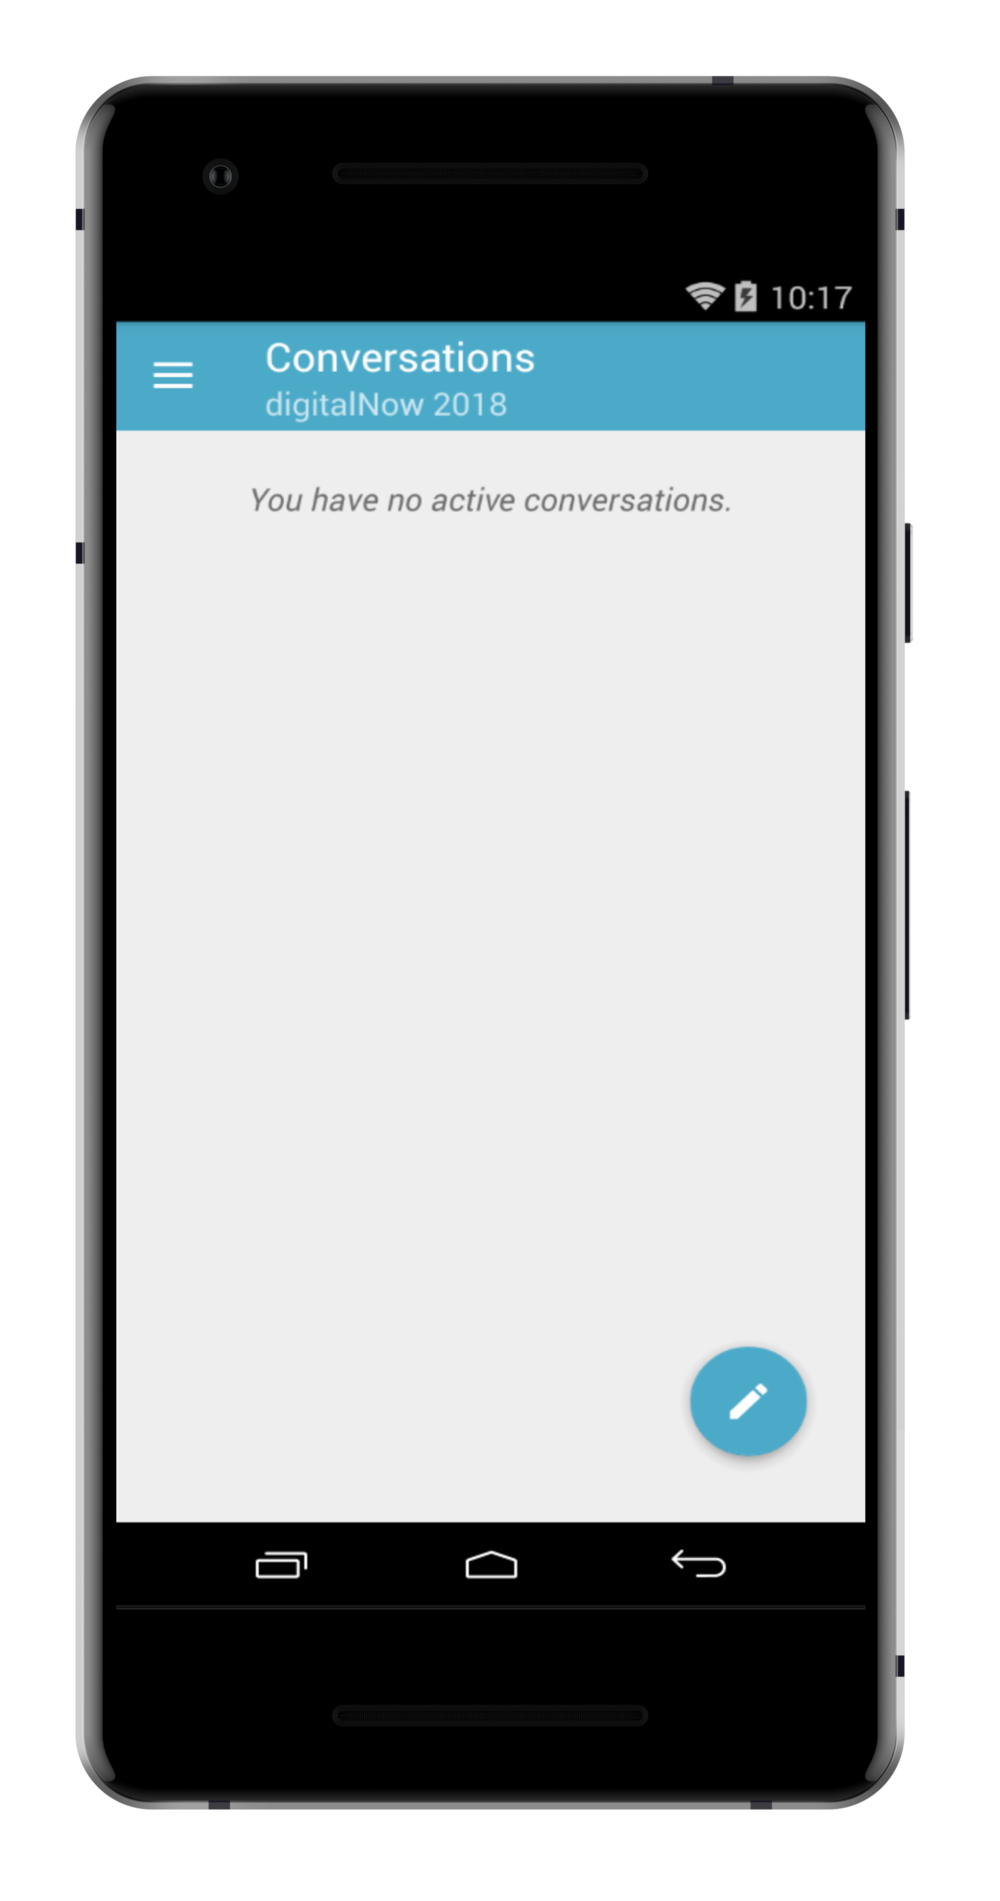 step 2. - TAP THE LITTLE PENCIL ICON TO BEGIN YOUR FIRST CONVERSATION.